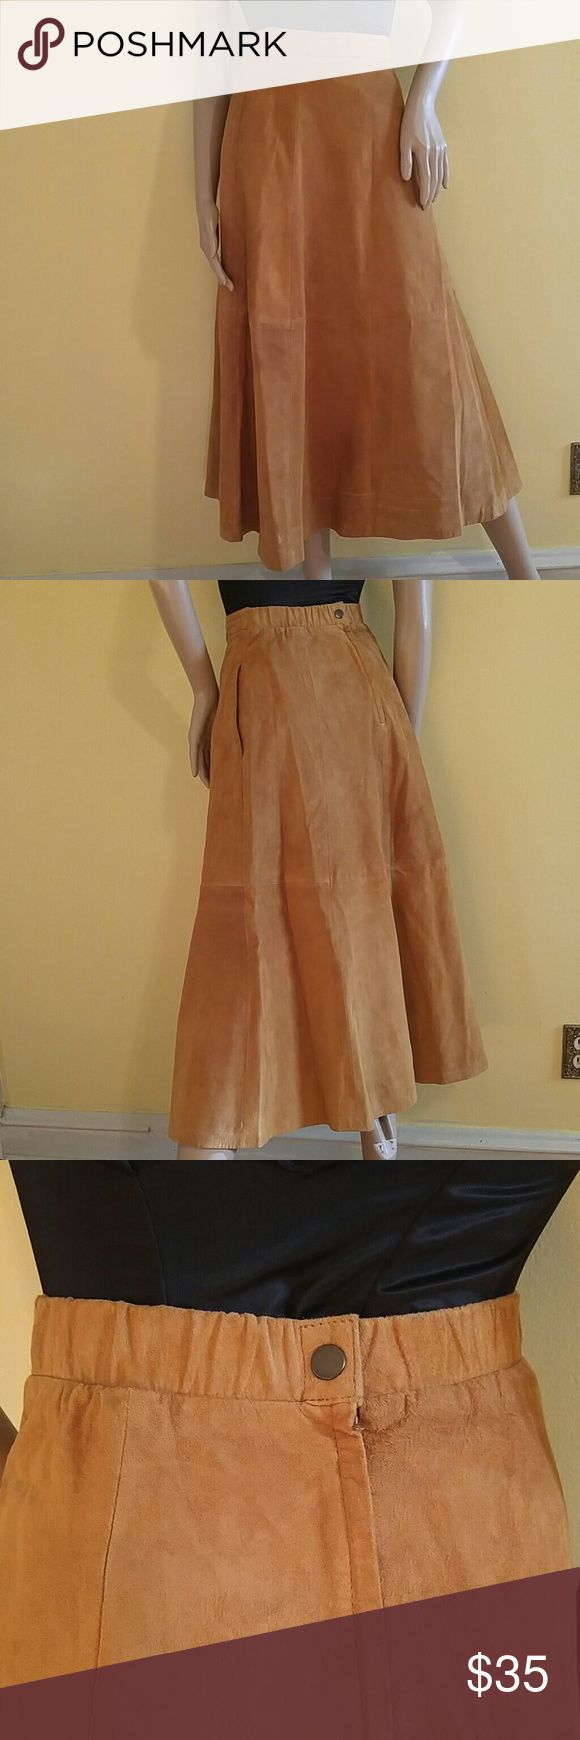 """Vintage Suede Tan Maxi Skirt. Vintage Suede Tan Maxi Skirt.. Lovely Condition! Fully Lined. Exact measurements are: Length : 37"""" Waist: 26"""" -27"""" back elastic waist 2 Side Pockets  Label: Hunt Club size 6 Vintage Skirts"""